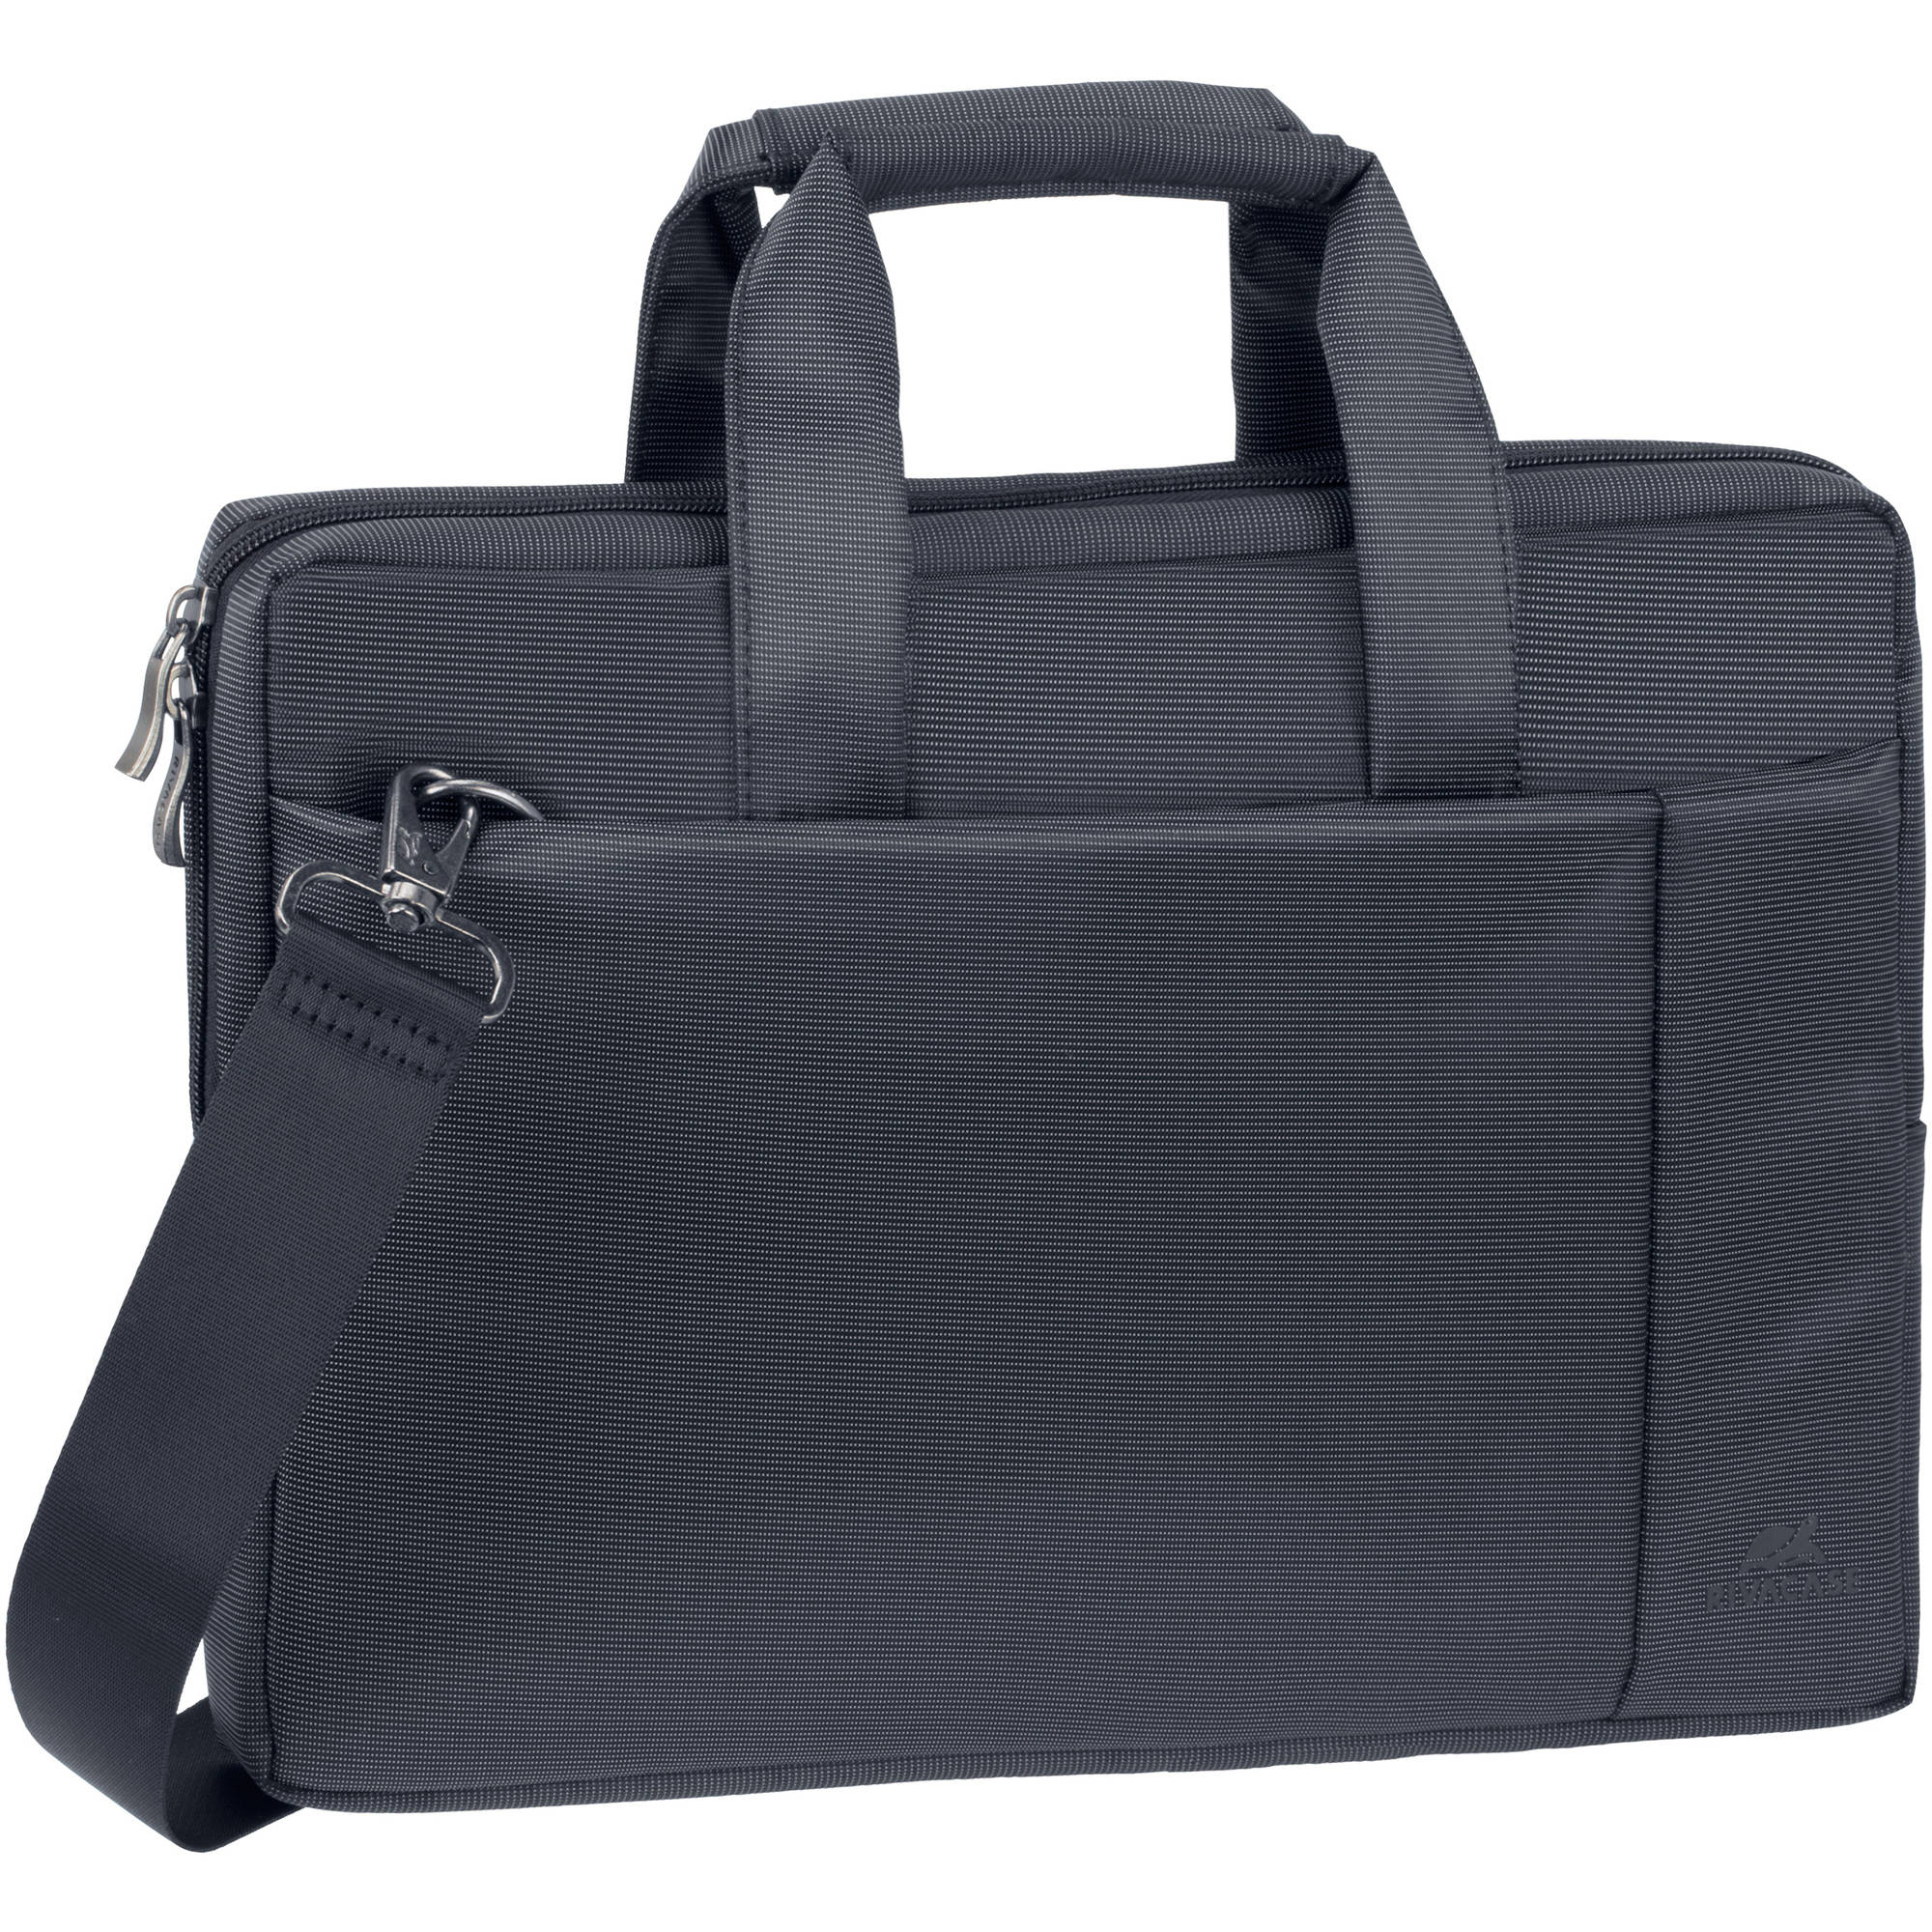 "RIVACASE 13.3"" Laptop Bag 8221, Black"